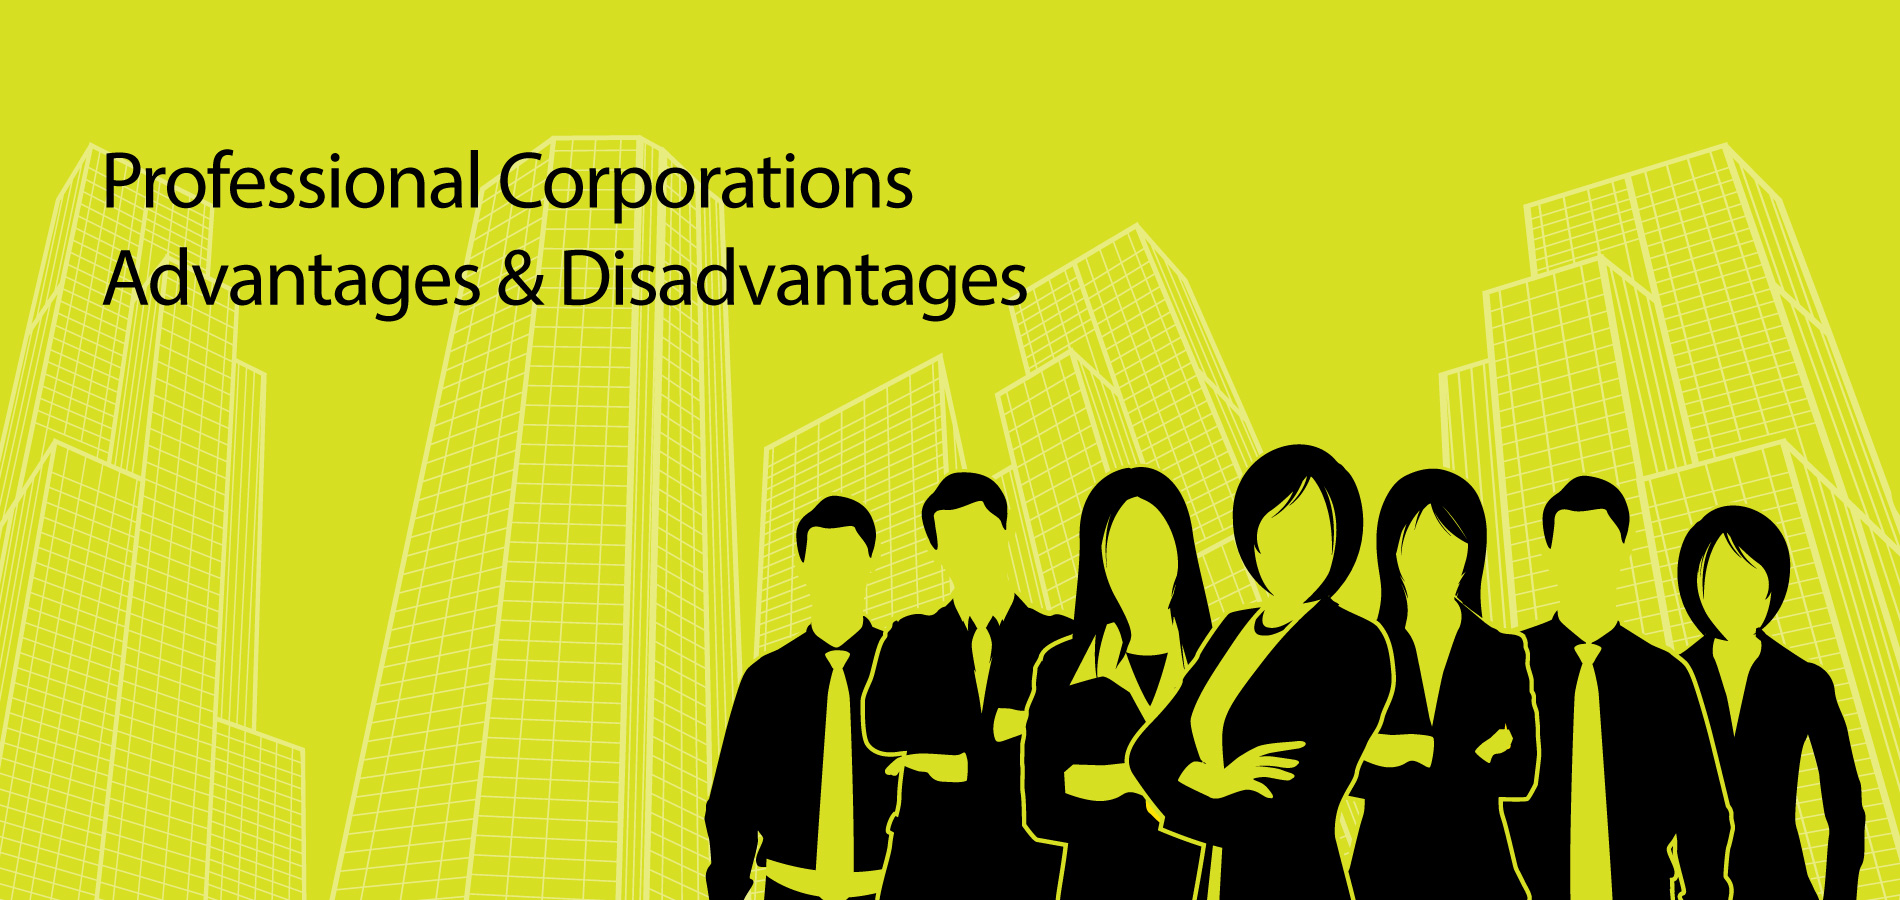 Professional Corporations Advantages and Disadvantages